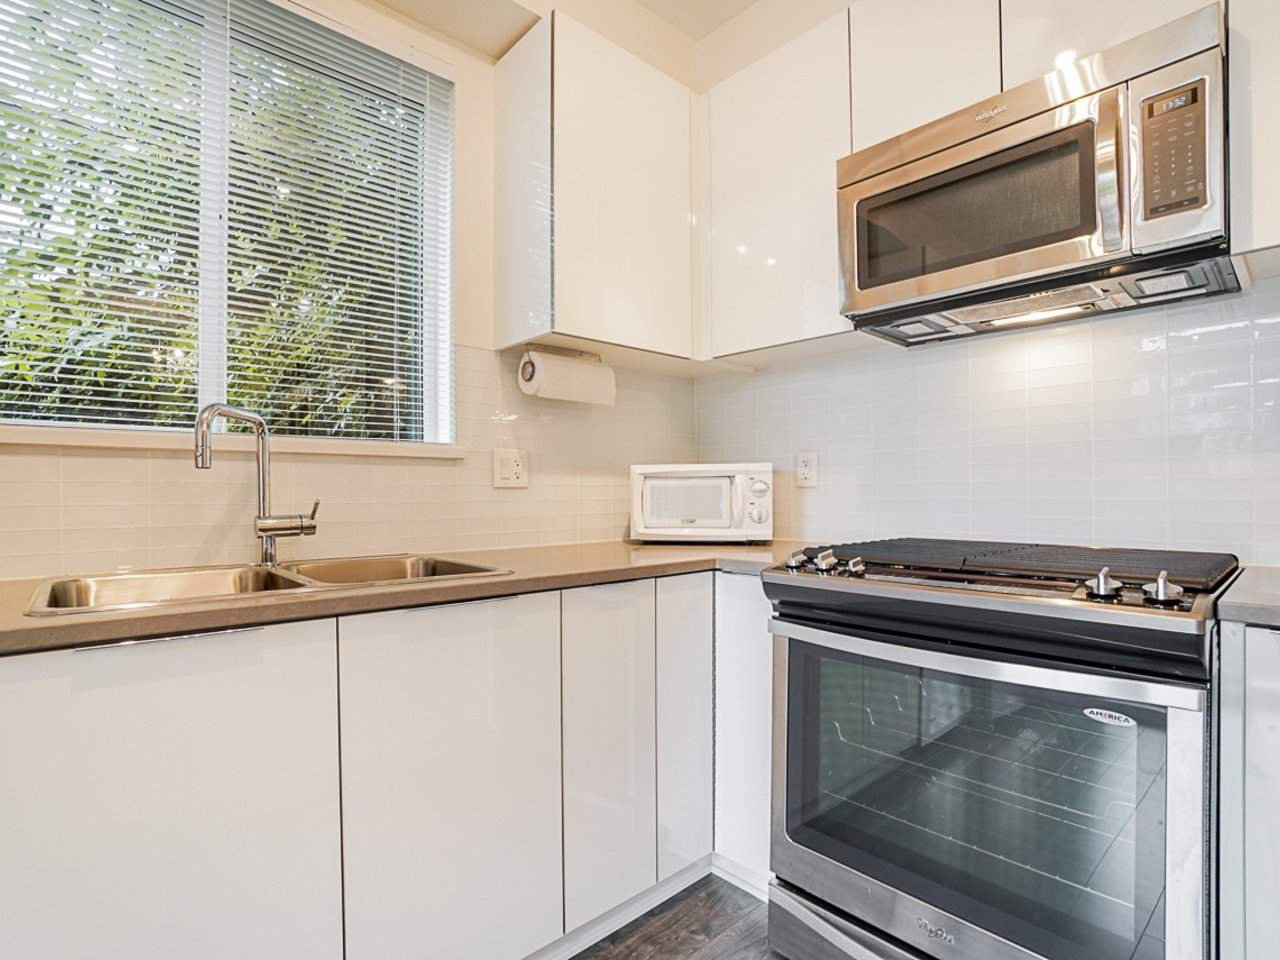 Photo 16: Photos: 108 1151 WINDSOR Mews in Coquitlam: New Horizons Condo for sale : MLS®# R2500299